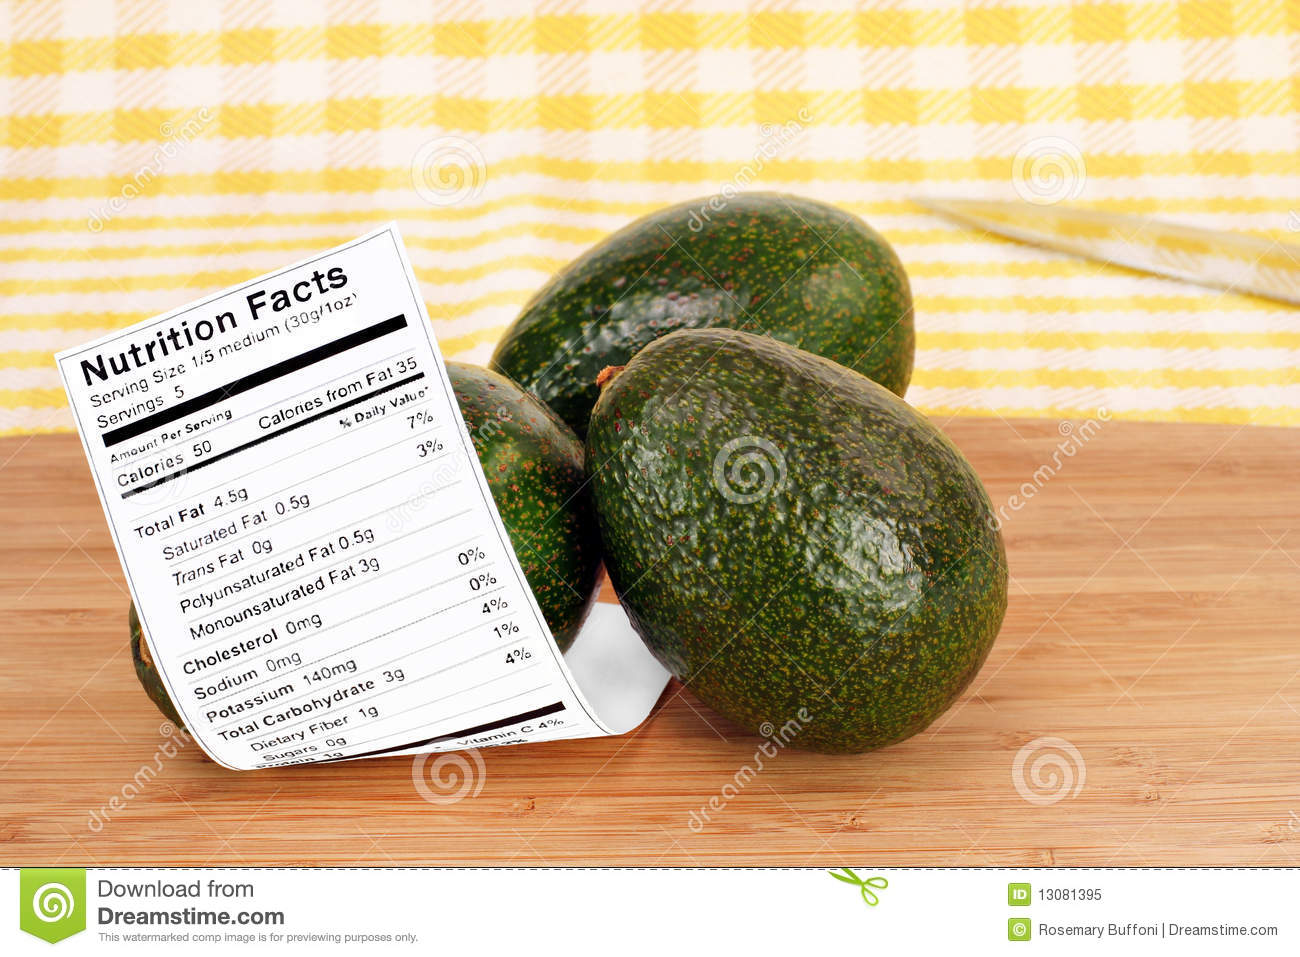 healthy whole avocados with nutrition label stock image - image of